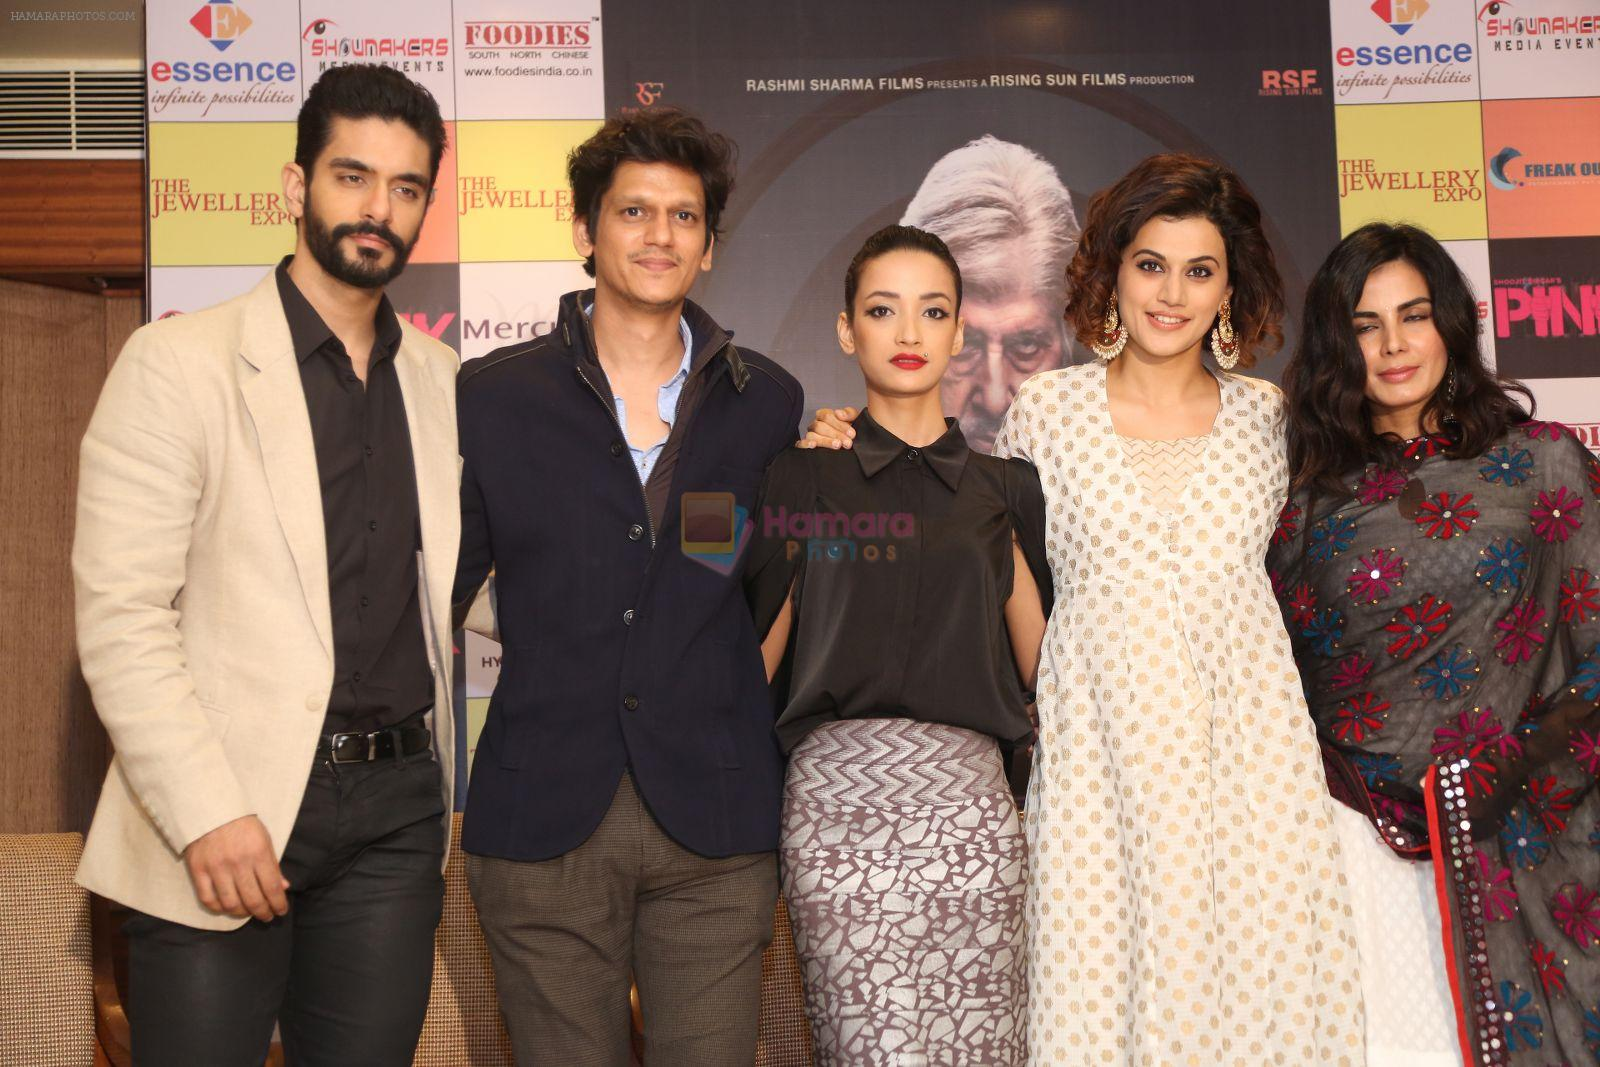 Taapsee Pannu , Kirti Kulhari, Andrea Tariang, Angad Bedi at Pink press meet in Mumbai on 9th Sept 2016